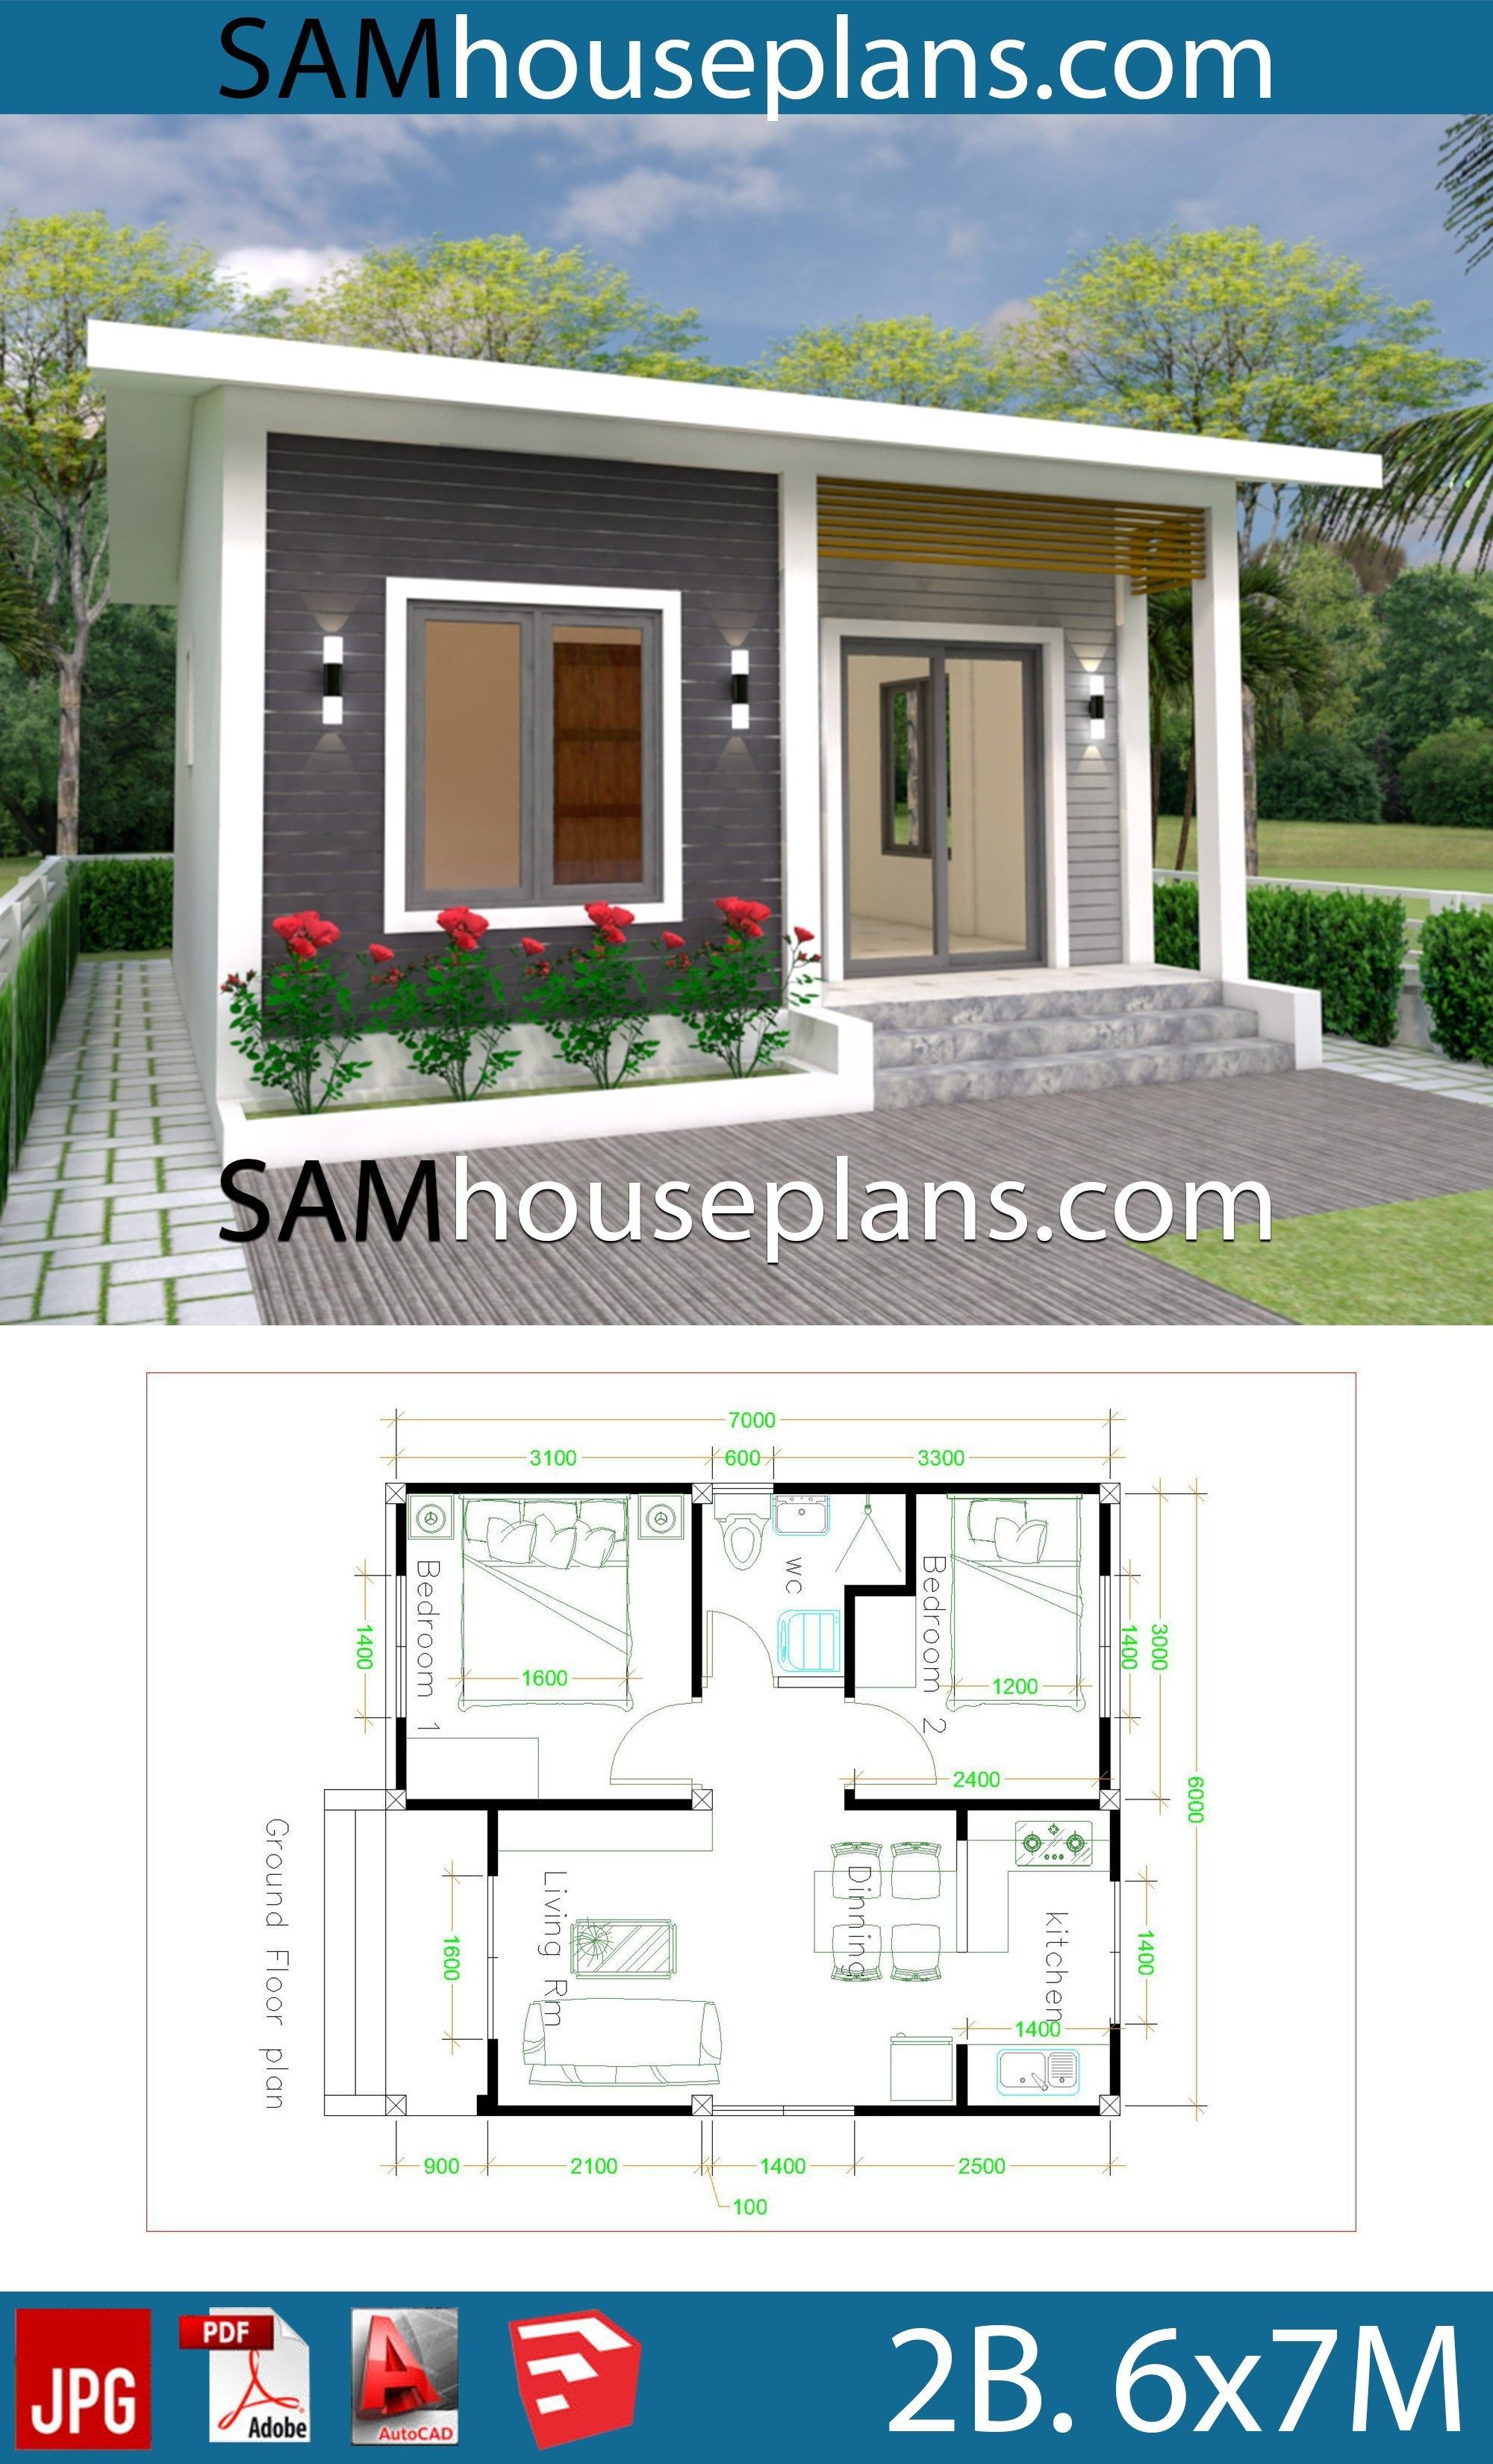 House Plans 6x7m With 2 Bedrooms Full Plansthe House Has Car Parking And Garden Living Room Dining Simple House Design House Design Small House Design Plans